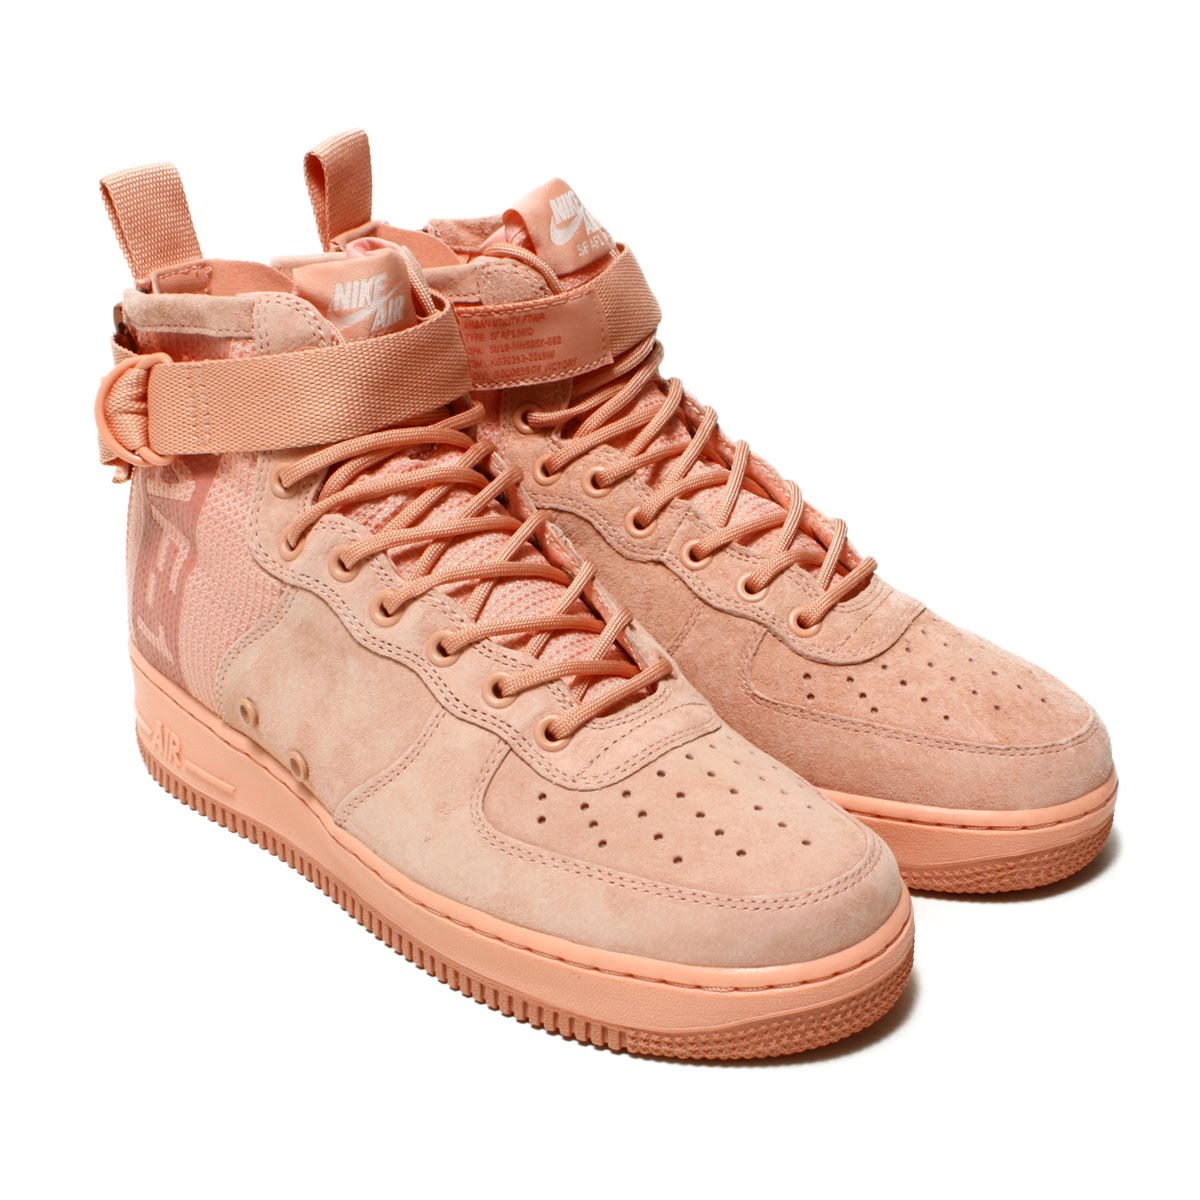 NIKE SF AF1 MID SUEDE(ナイキ SF AF 1 ミッド スエード)CORAL STARDUST/RED STARDUST【メンズ レディース スニーカー】18SP-I